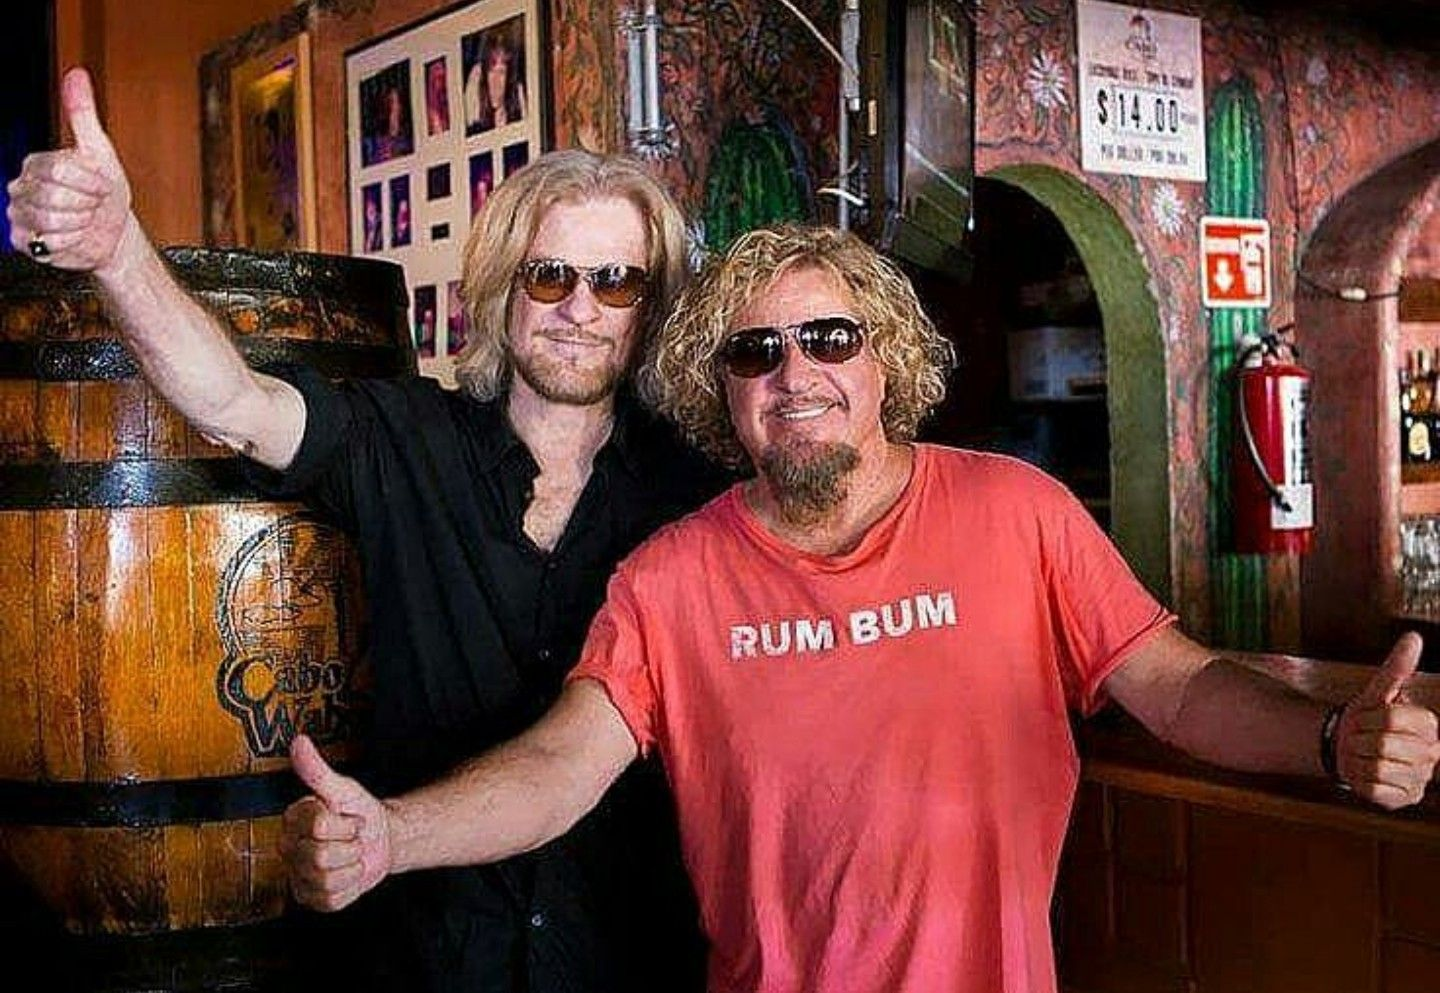 Pin By Irene De Groot Gardner On Daryl Hall Daryl Hall John Oates Daryl